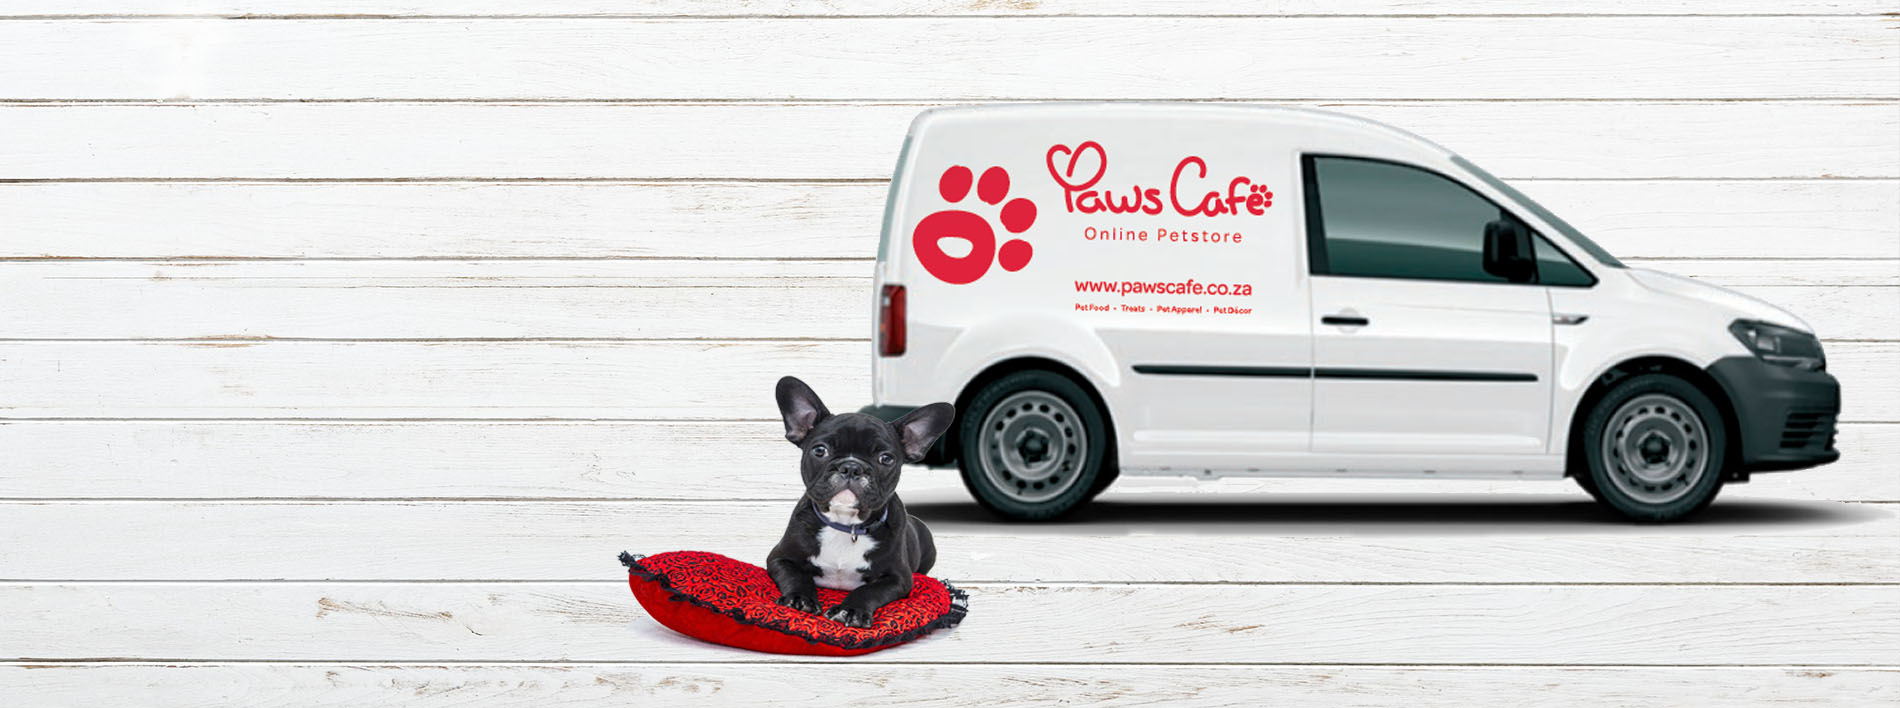 Online Pet Store Paws Cafe